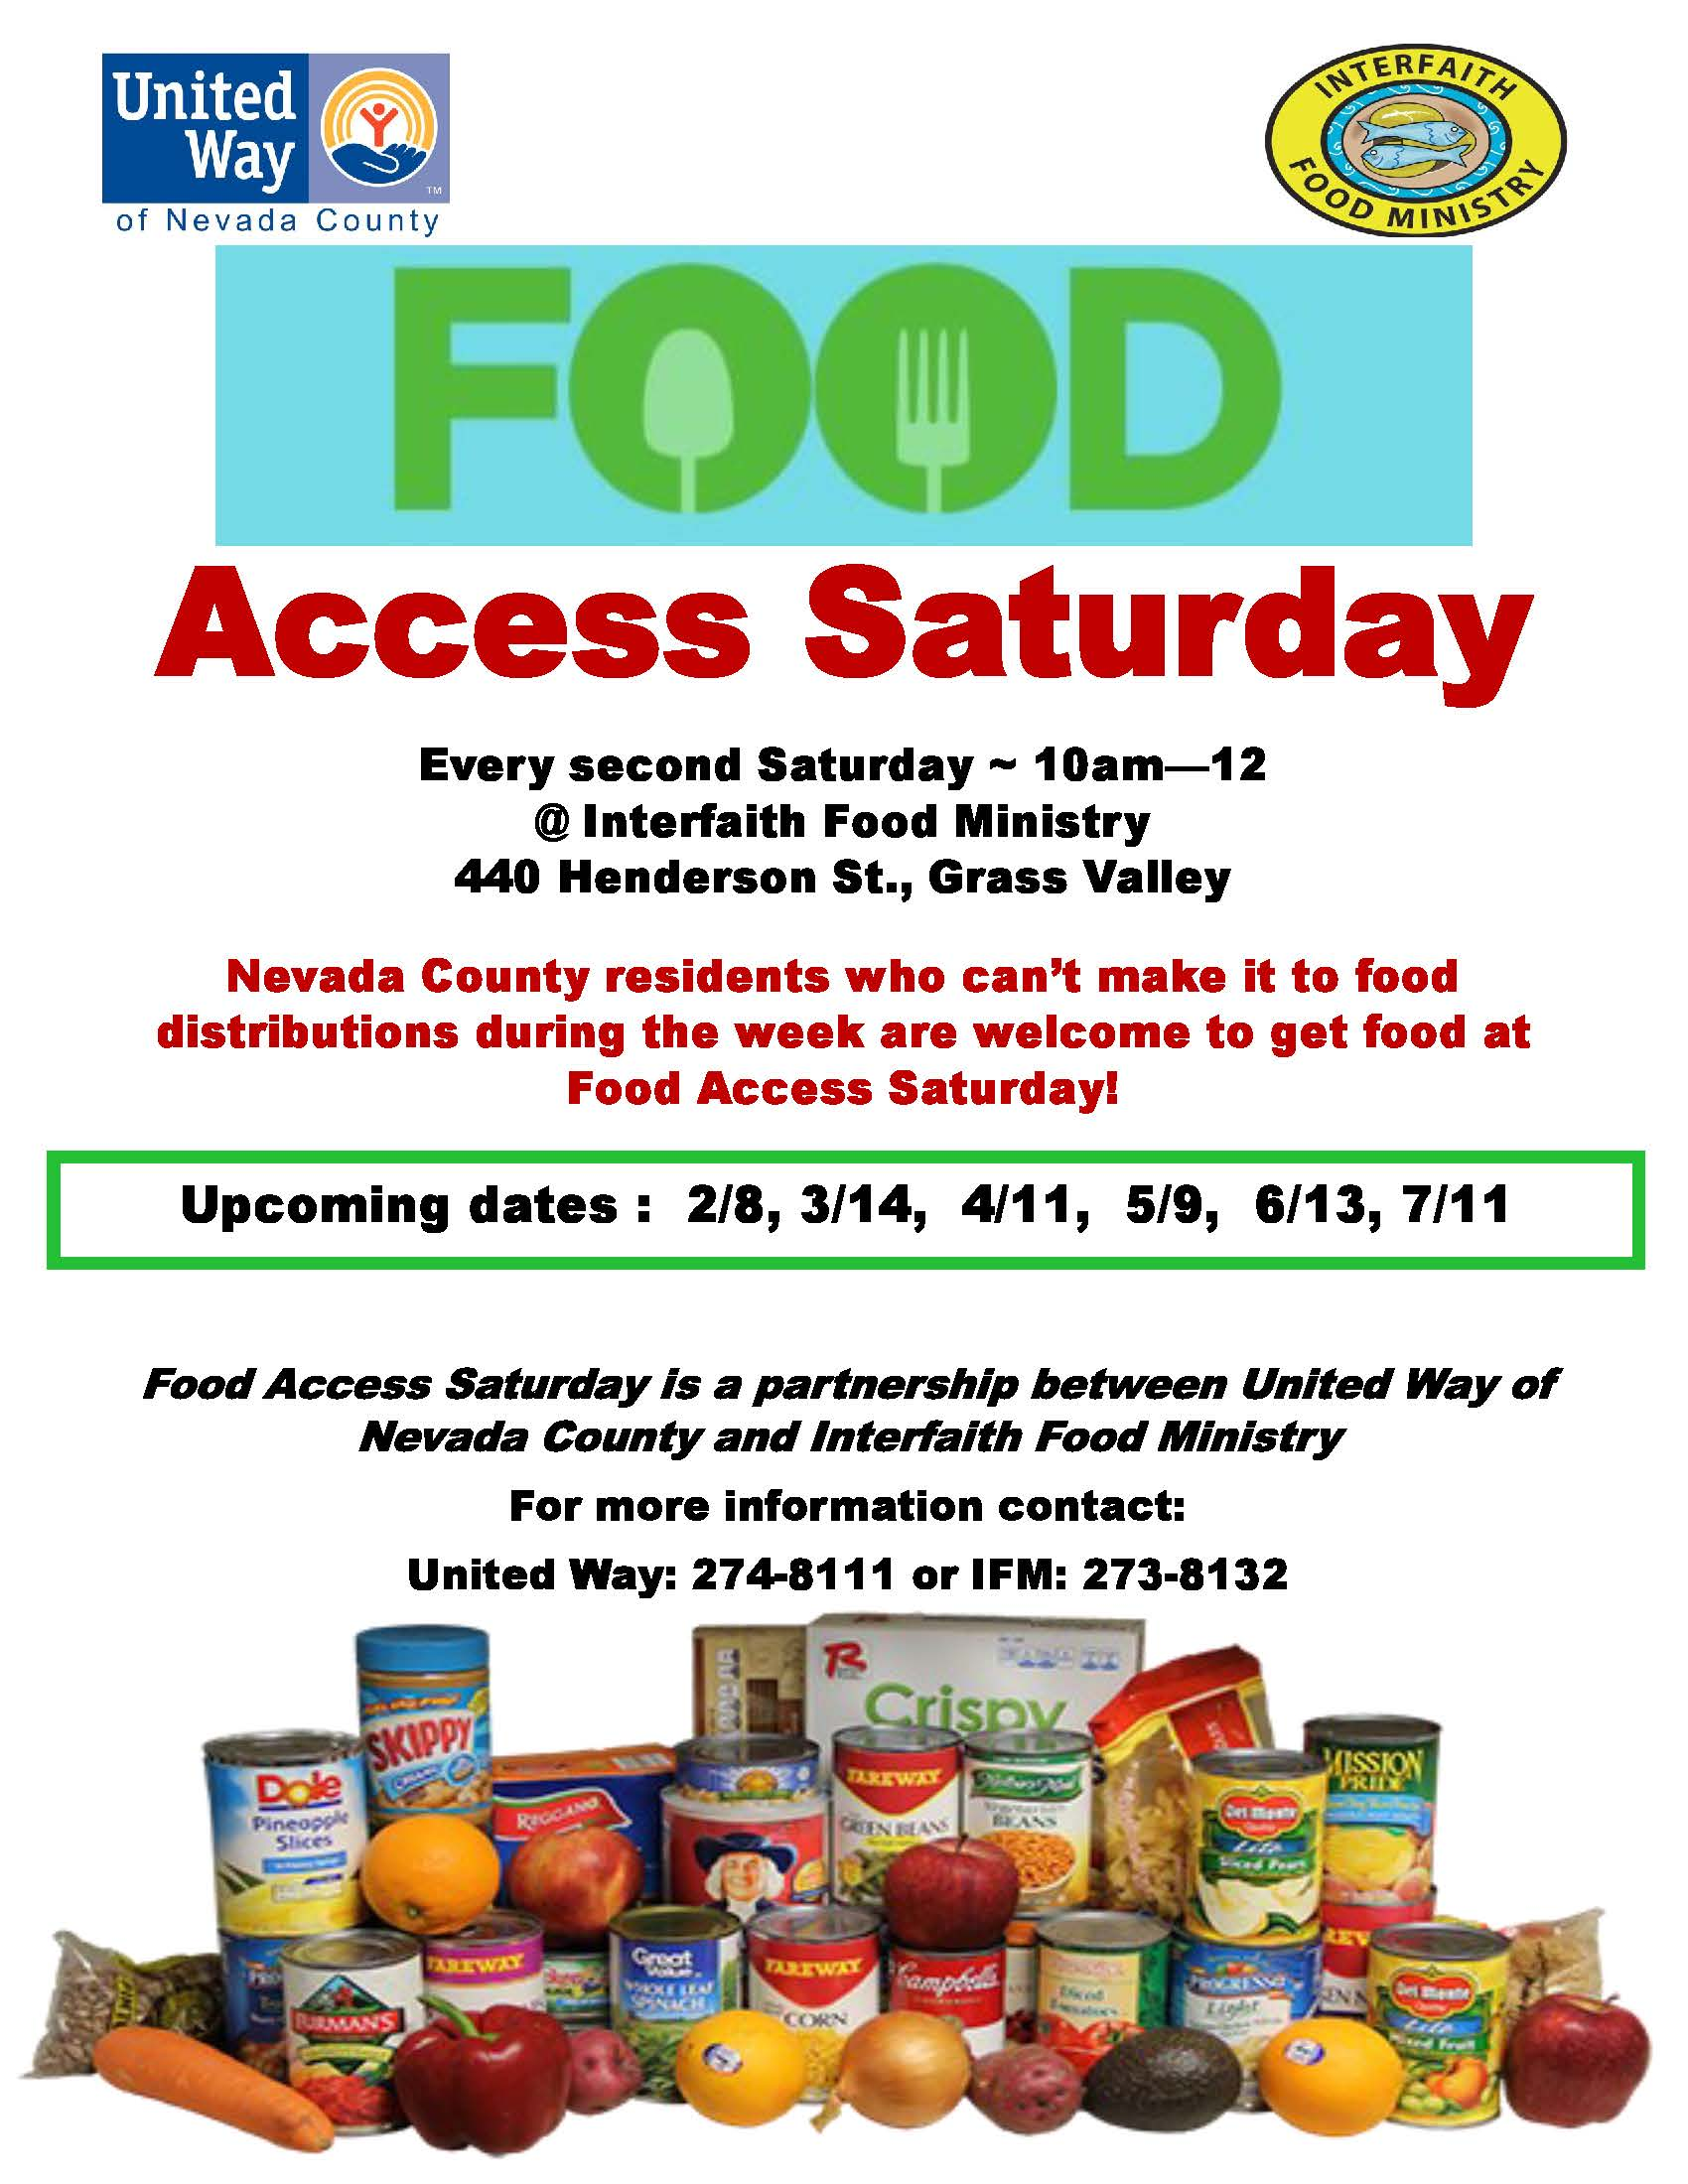 Food Access Saturday flyer